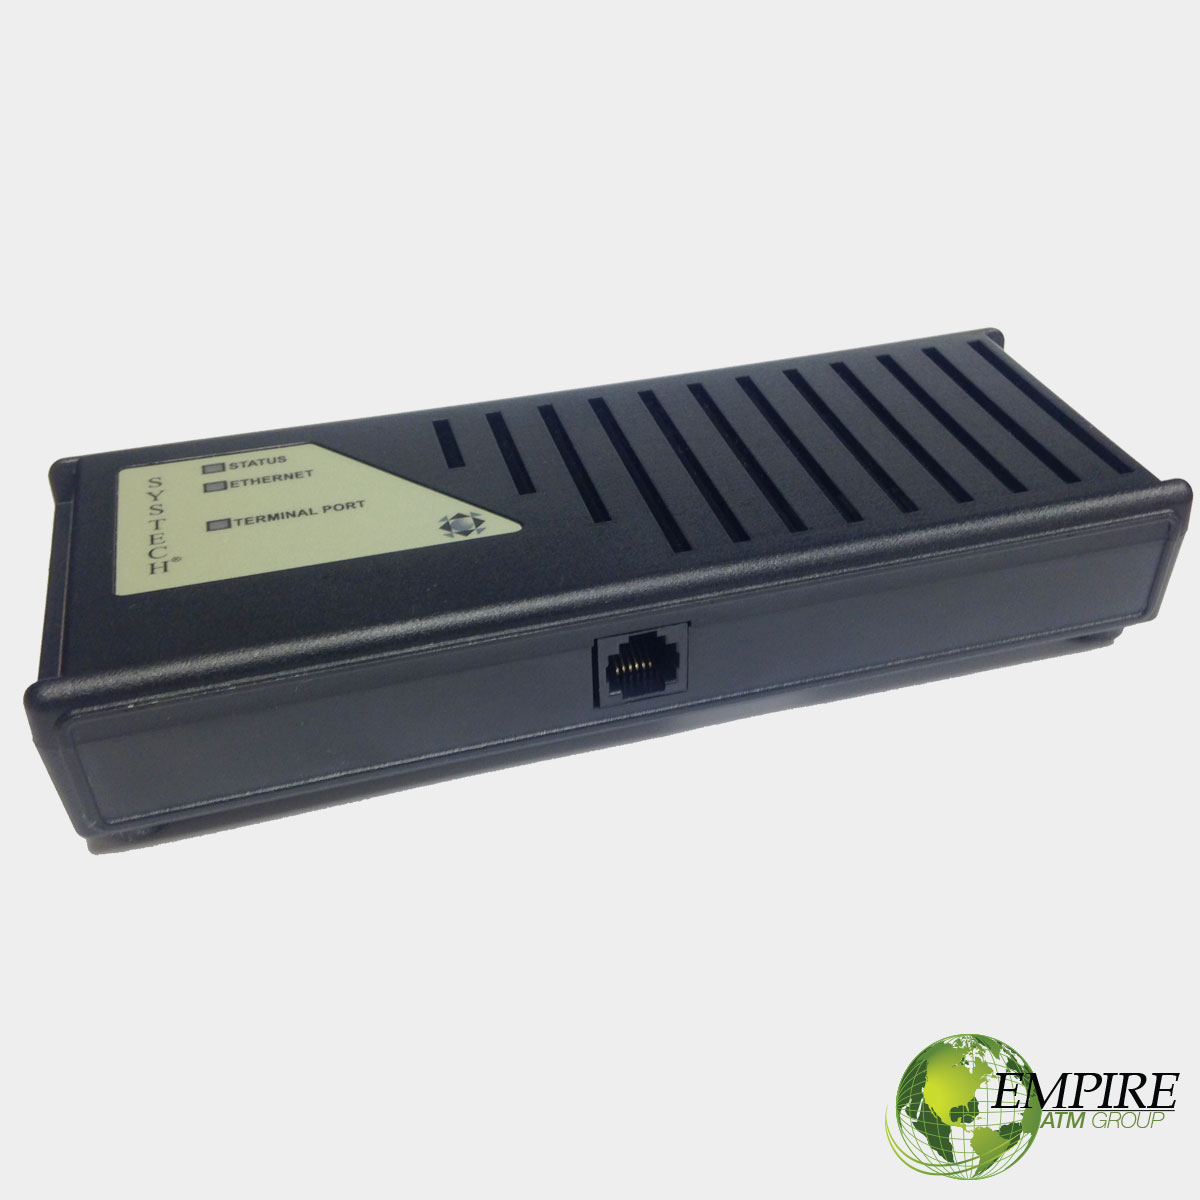 Systech IPG-7010 Dial-to-IP Converter